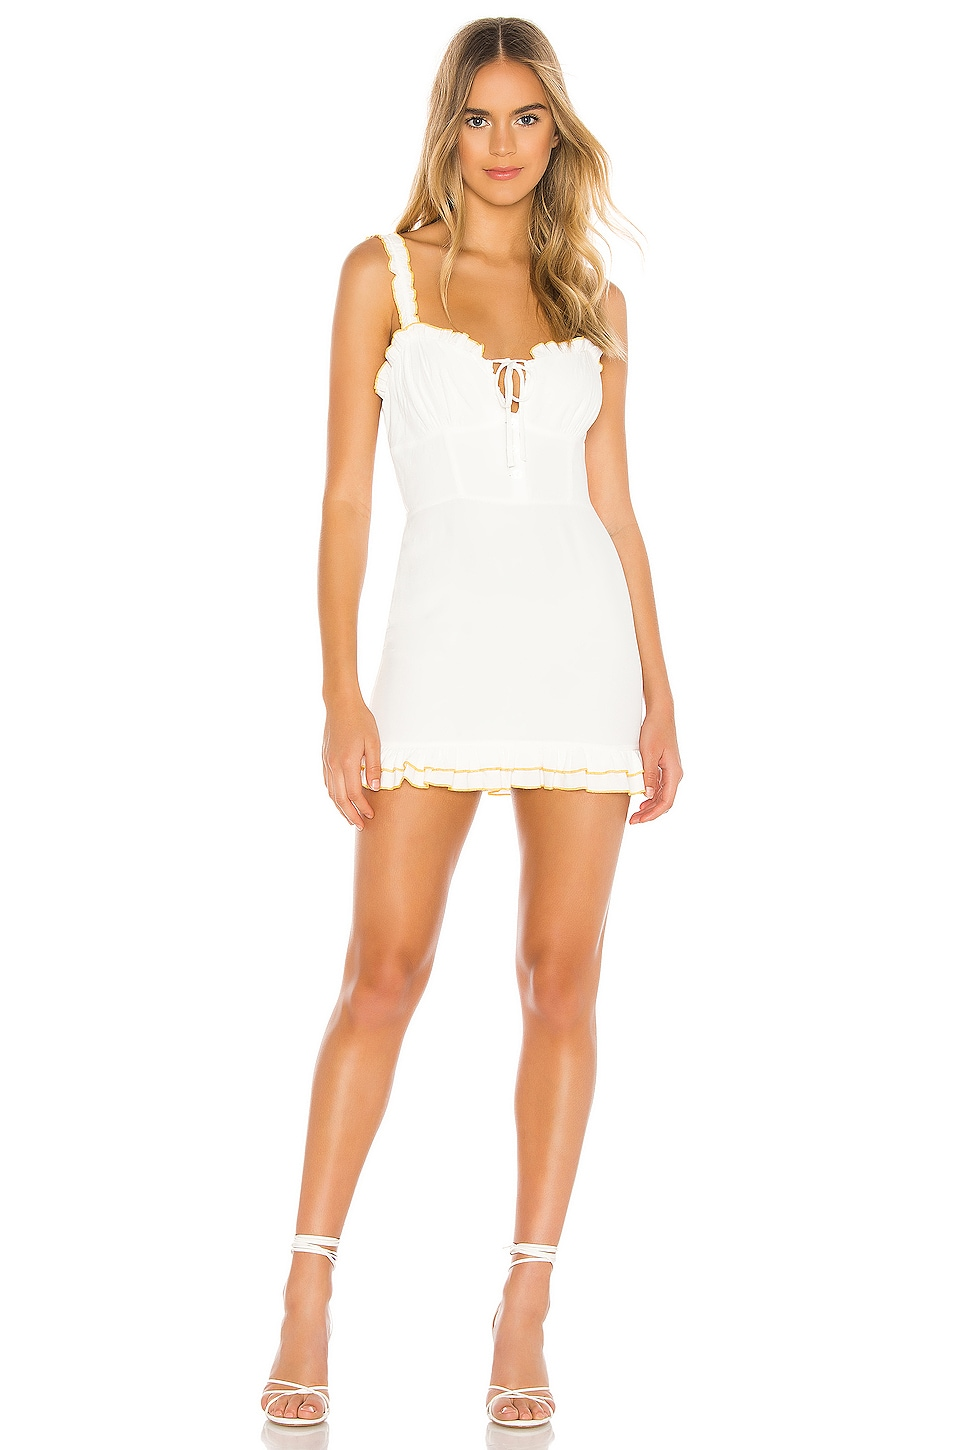 Privacy Please Jana Mini Dress in White & Yellow